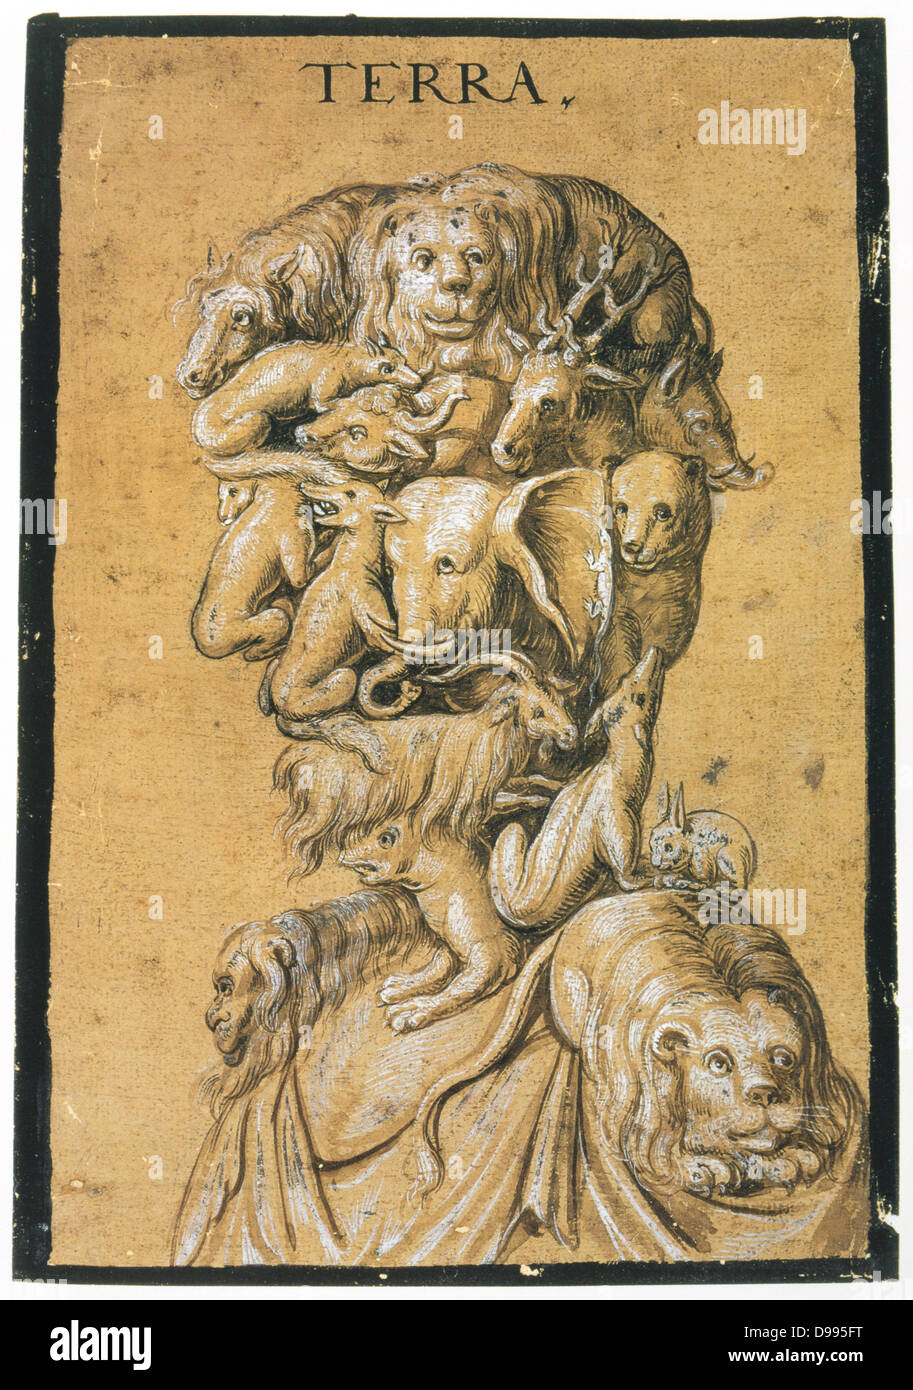 Earth', c1600. Tempera in brown and white on tinted paper. Anonymous. Grotesque head and shoulders composed - Stock Image